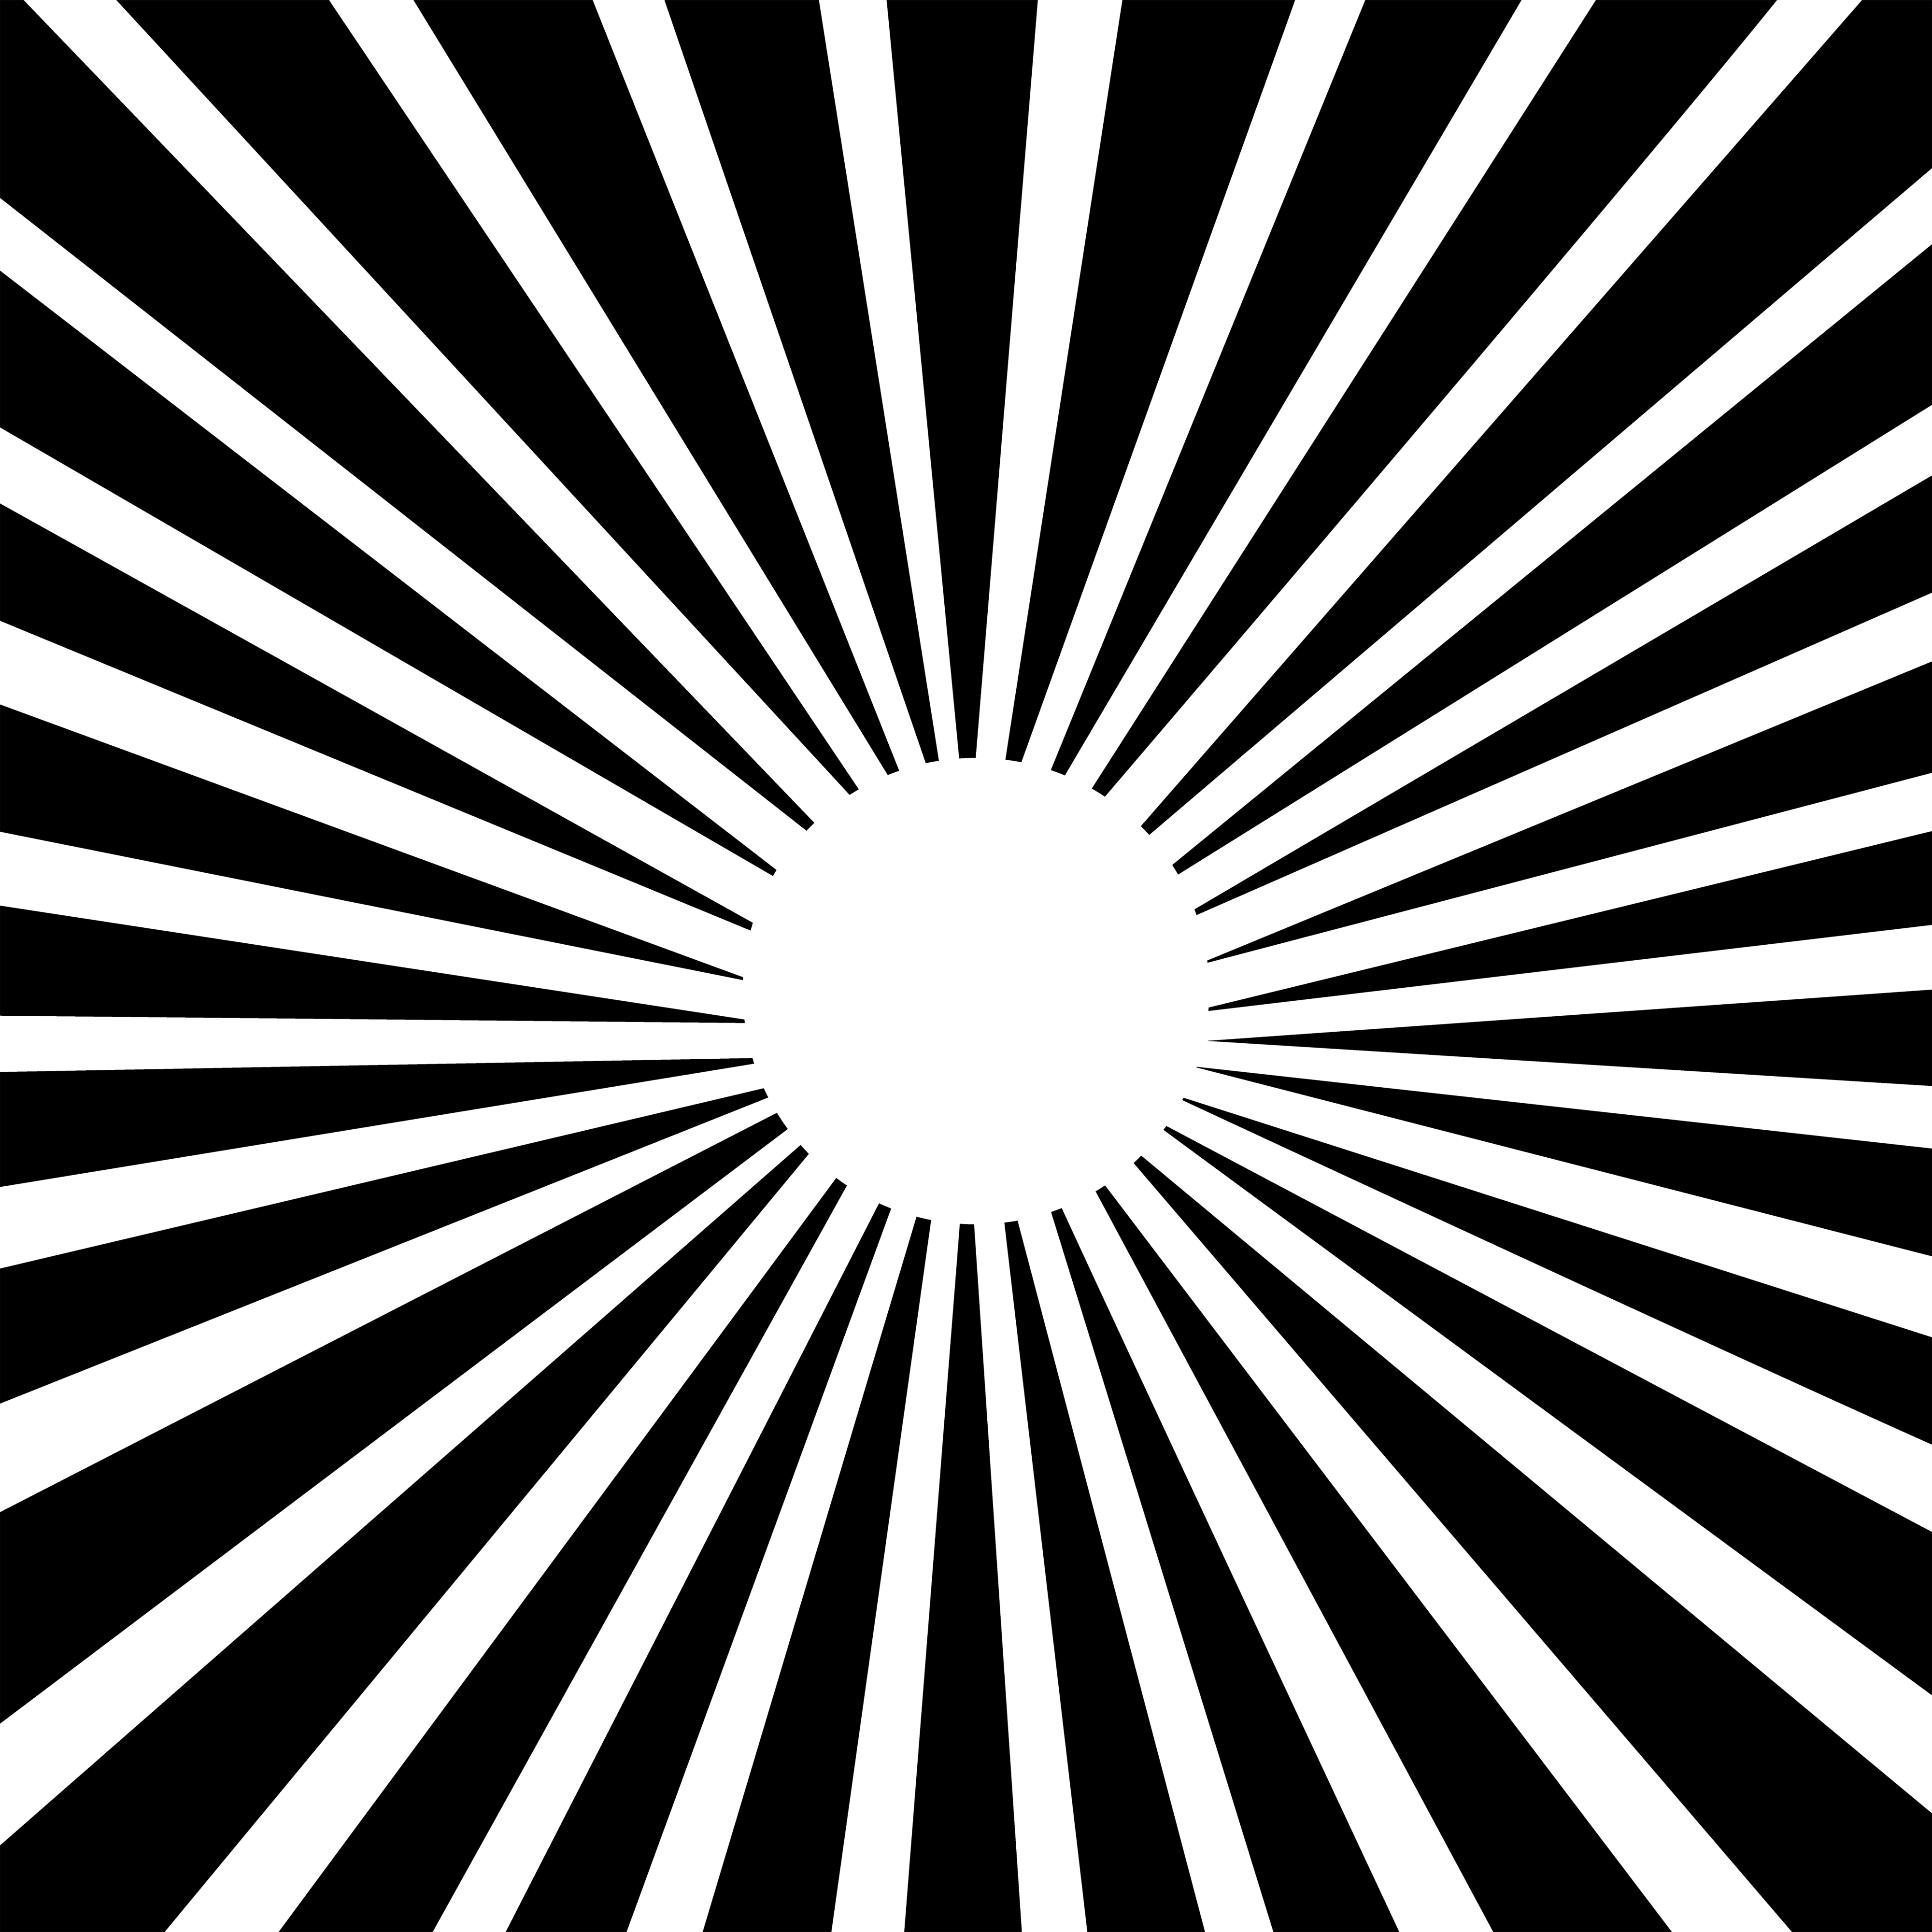 Black And White Line Designs : Black and white vector lines images